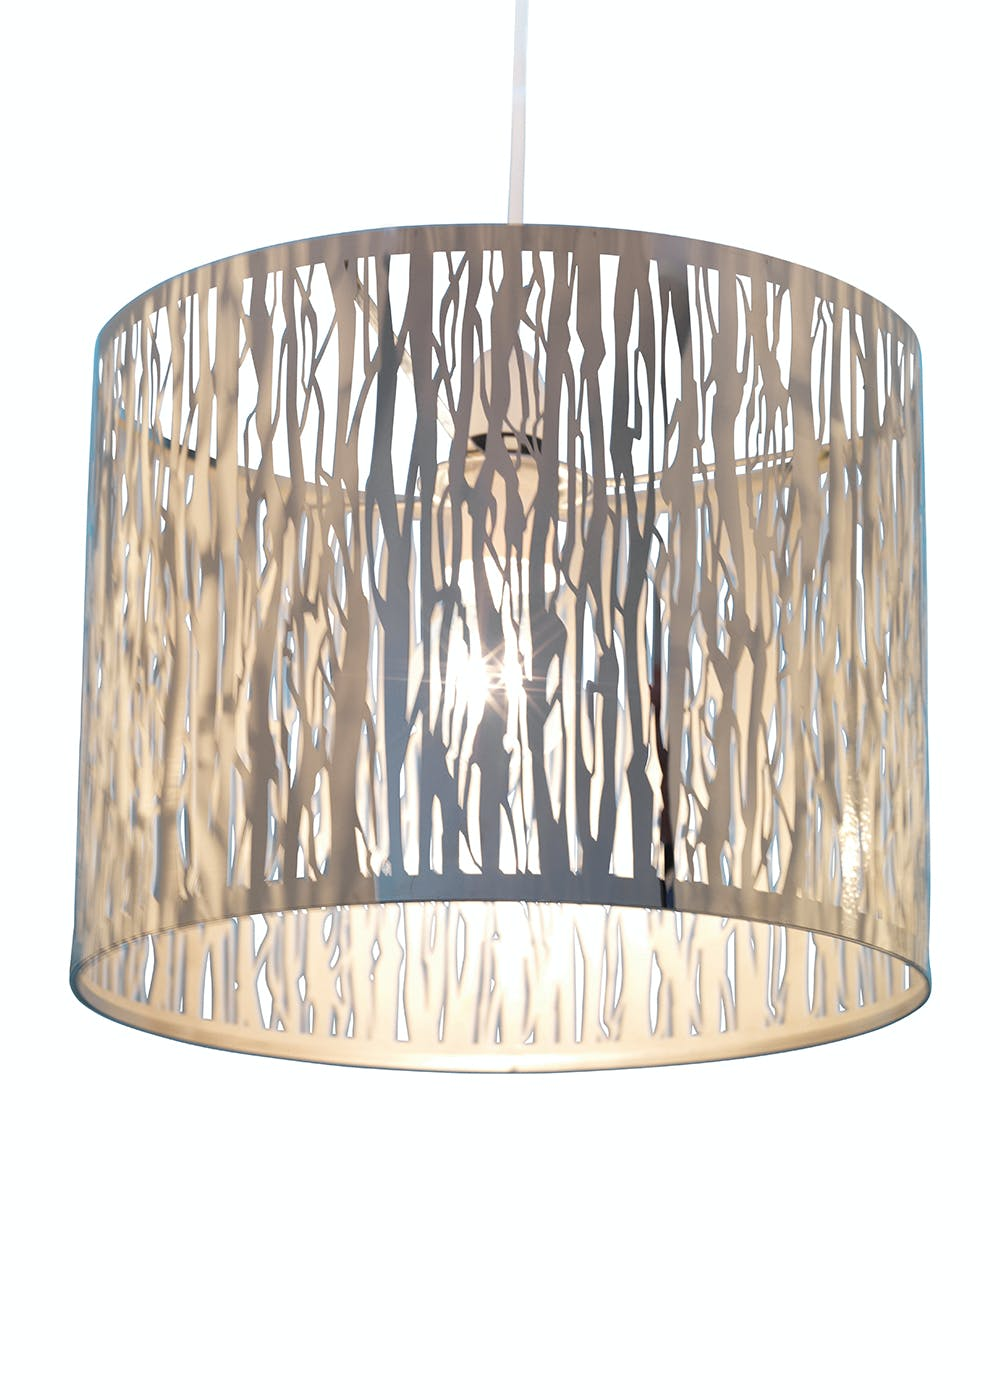 Donez metal easy fit lamp shade h24cm x w30cm silver matalan donez metal easy fit lamp shade h24cm x w30cm aloadofball Image collections